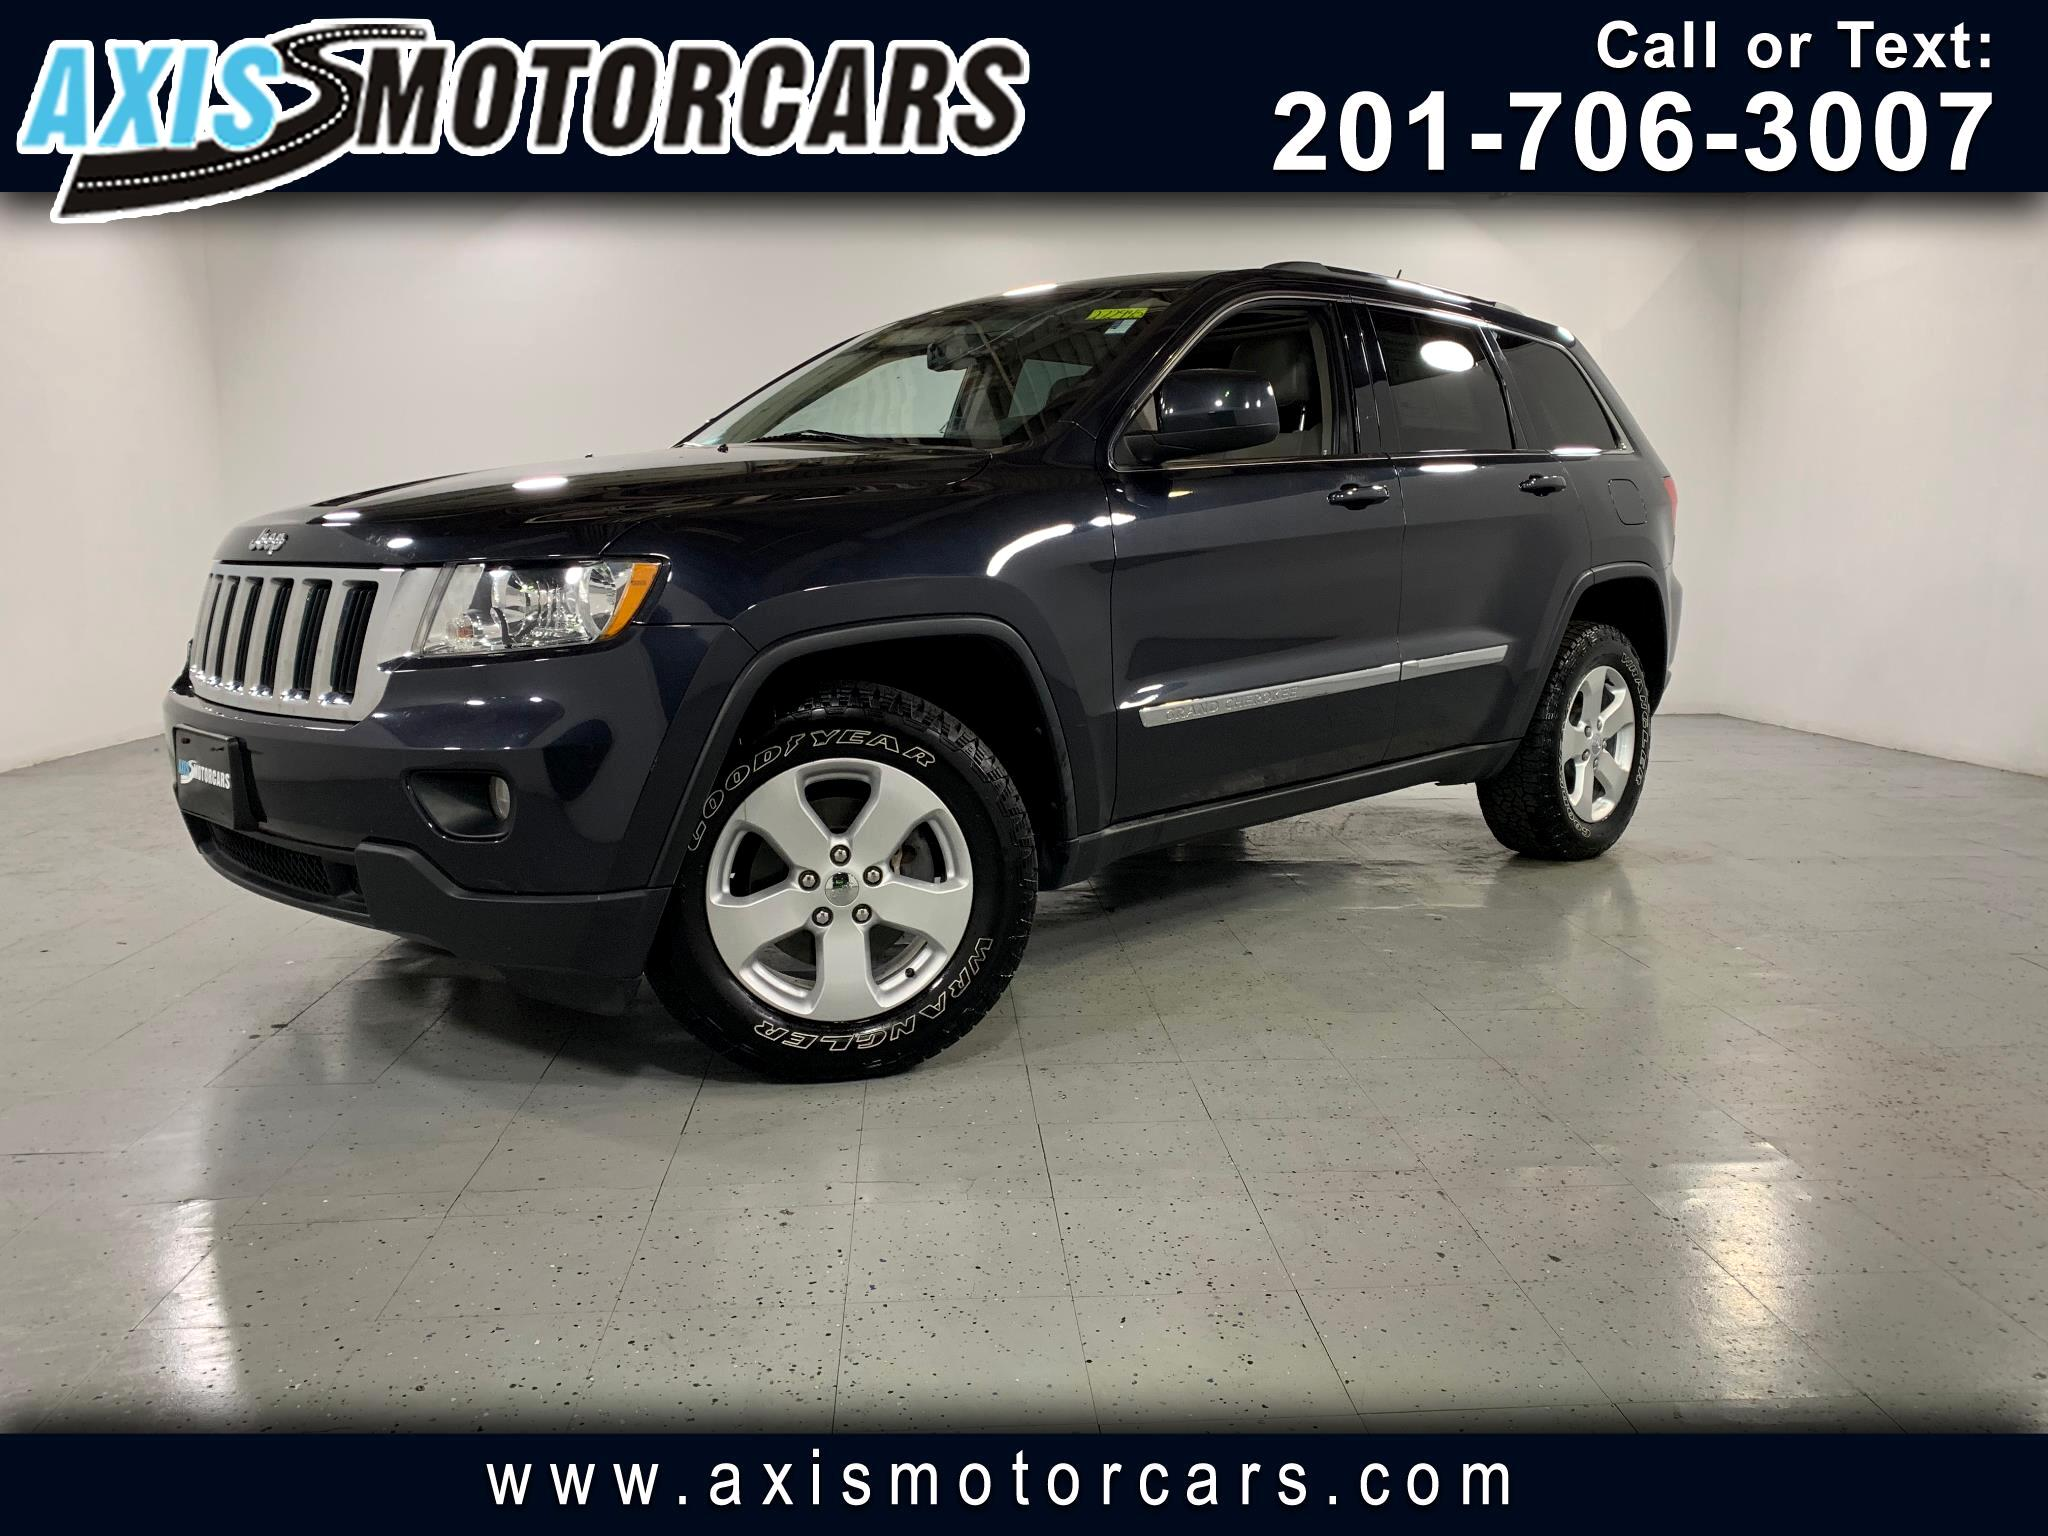 2012 Jeep Grand Cherokee w/Navigation Bakup Camera Panoramic Roof Leather